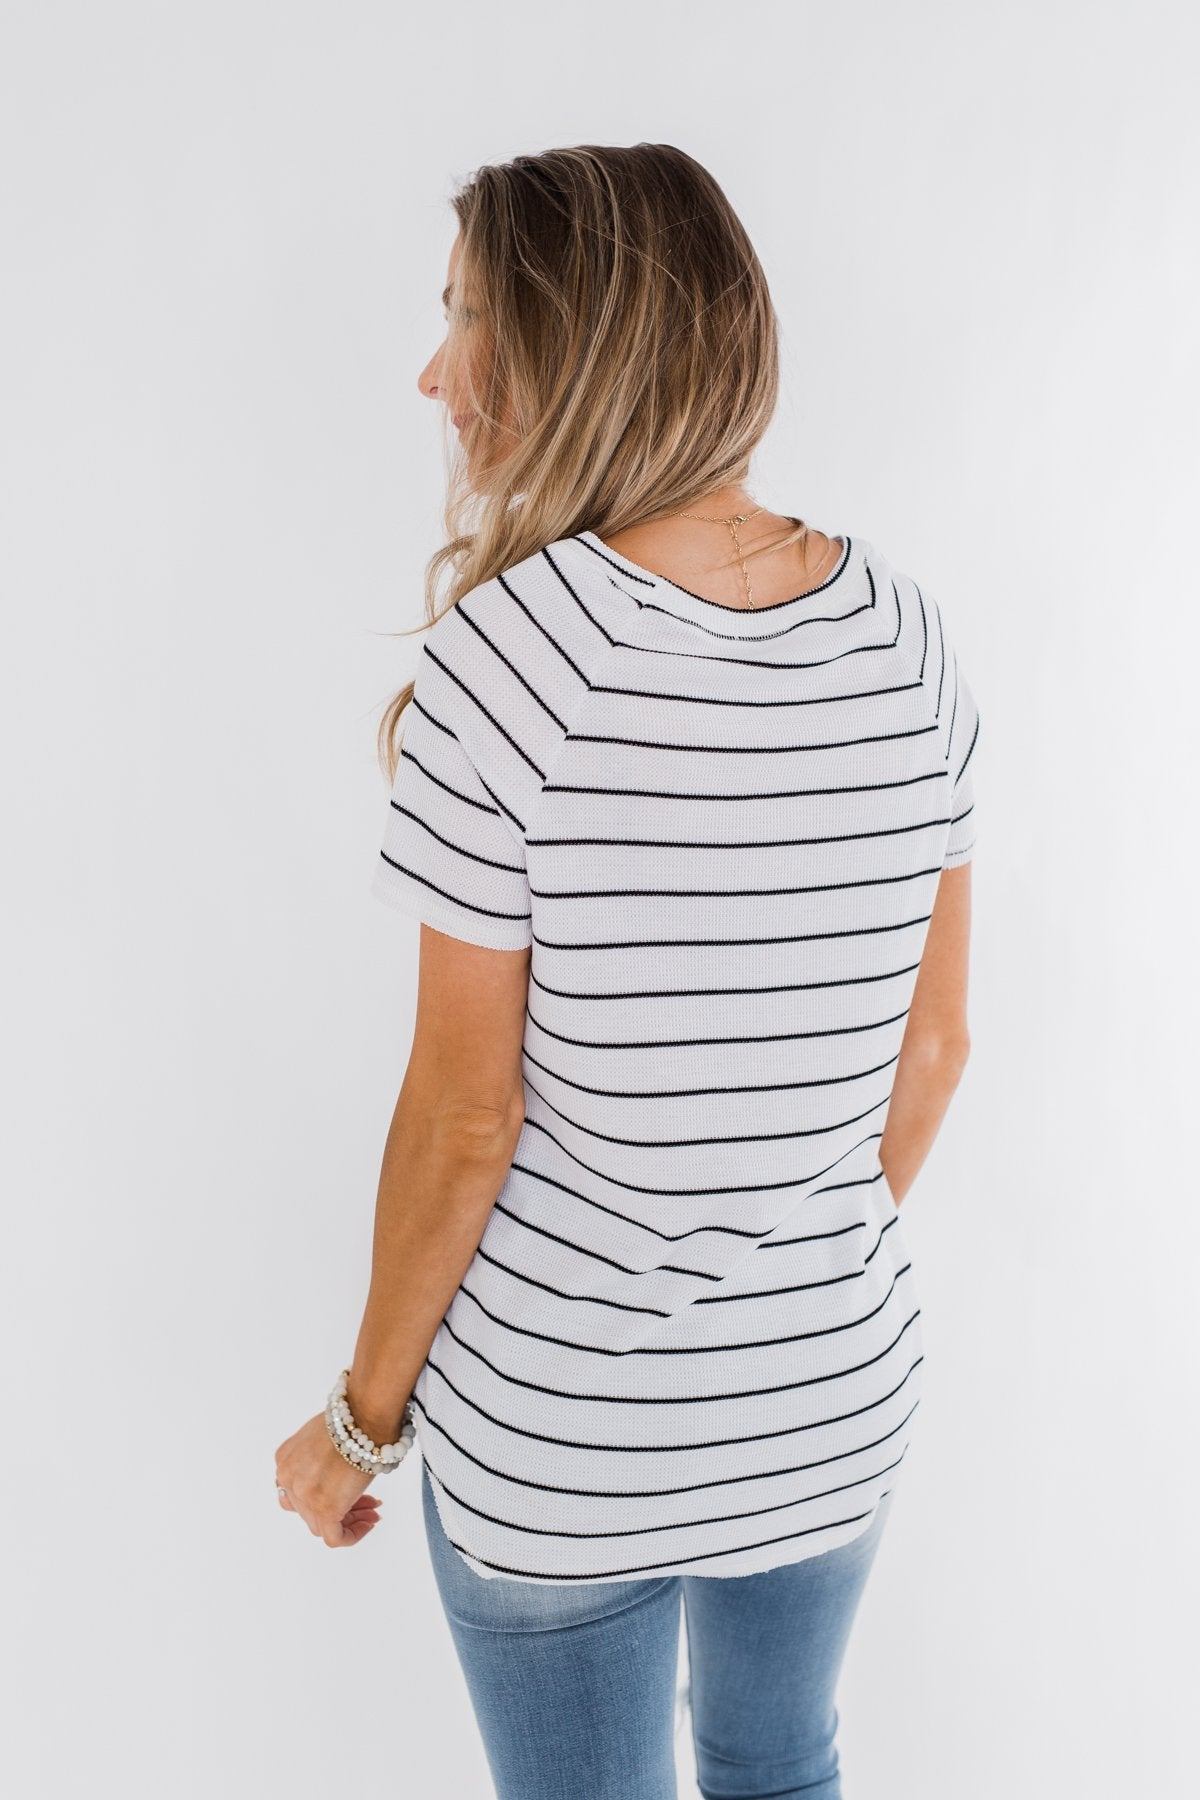 Between The Lines Striped Top- Black & White